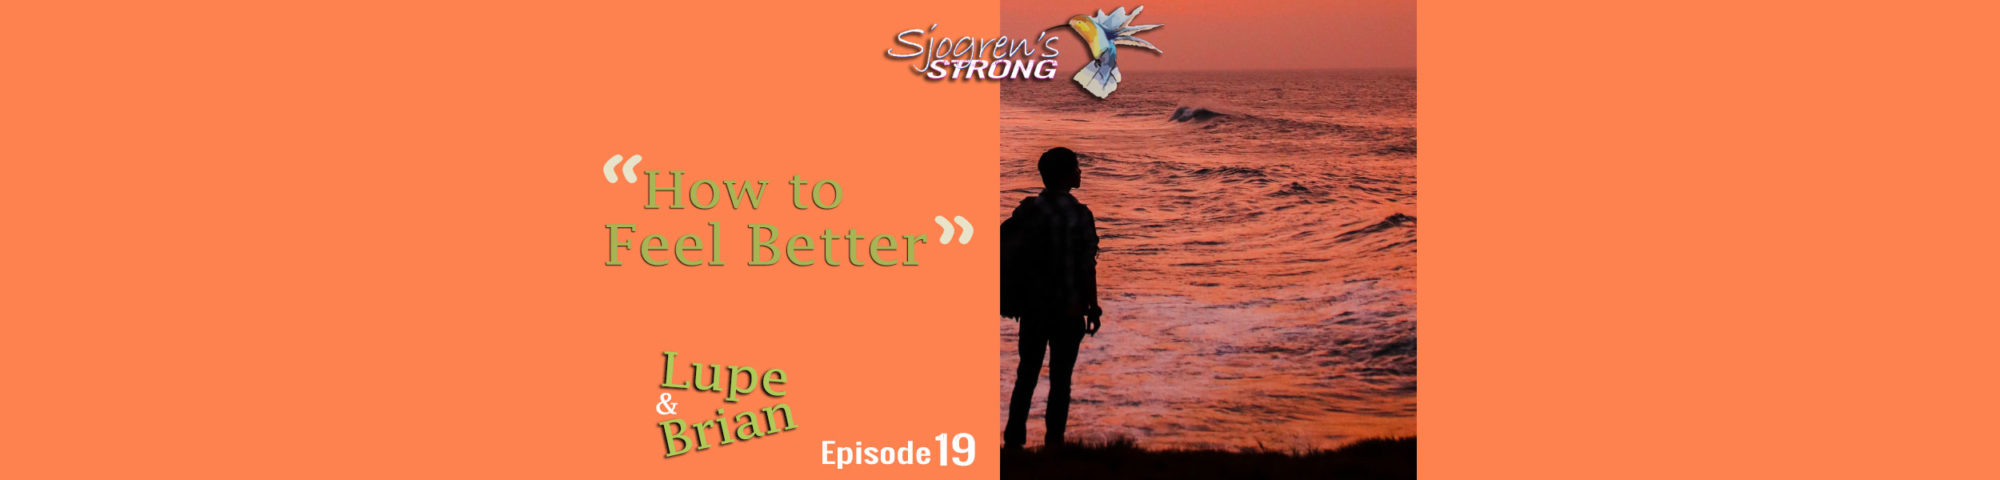 Sjogren's Strong episode 20 How to feel better